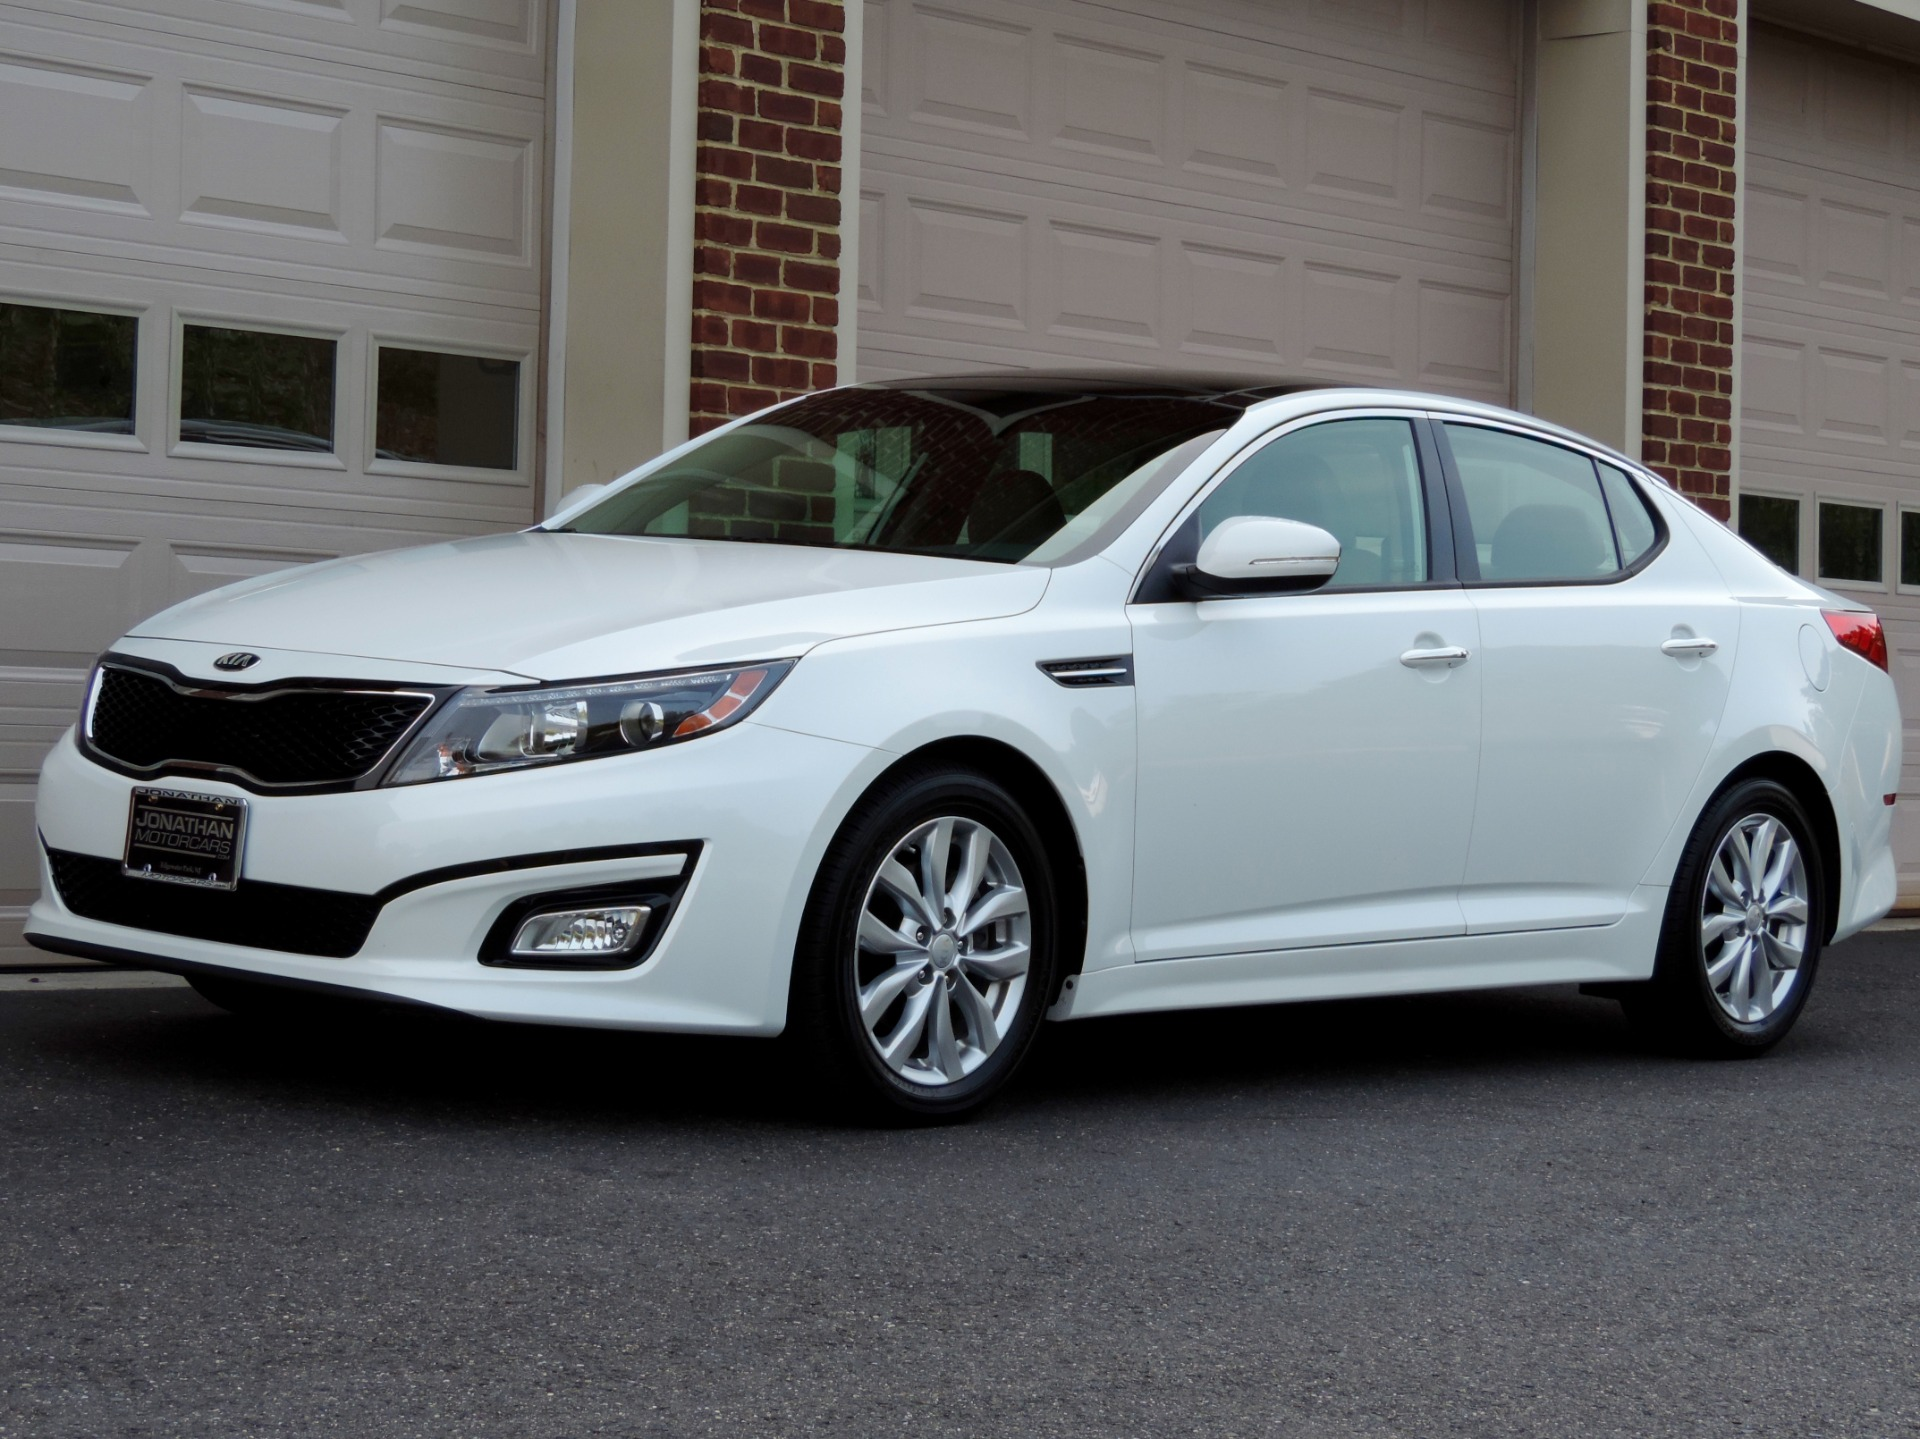 2015 kia optima ex stock 505993 for sale near edgewater. Black Bedroom Furniture Sets. Home Design Ideas